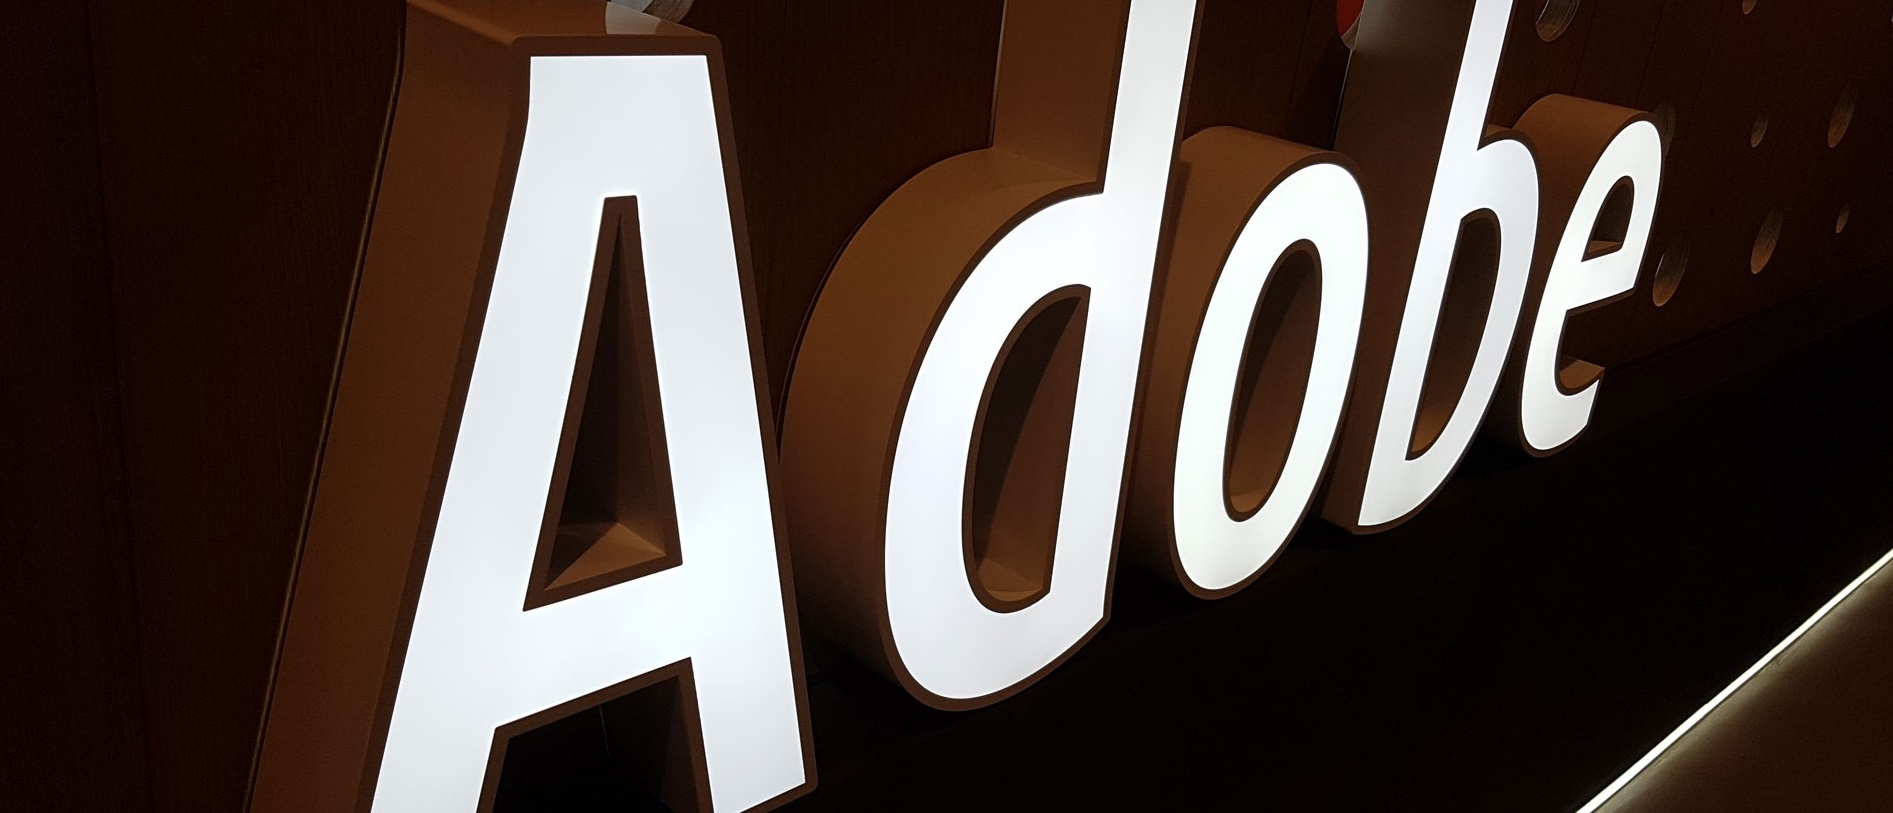 Spannende Entwicklungen auf dem Adobe Connect Partner Summit in London